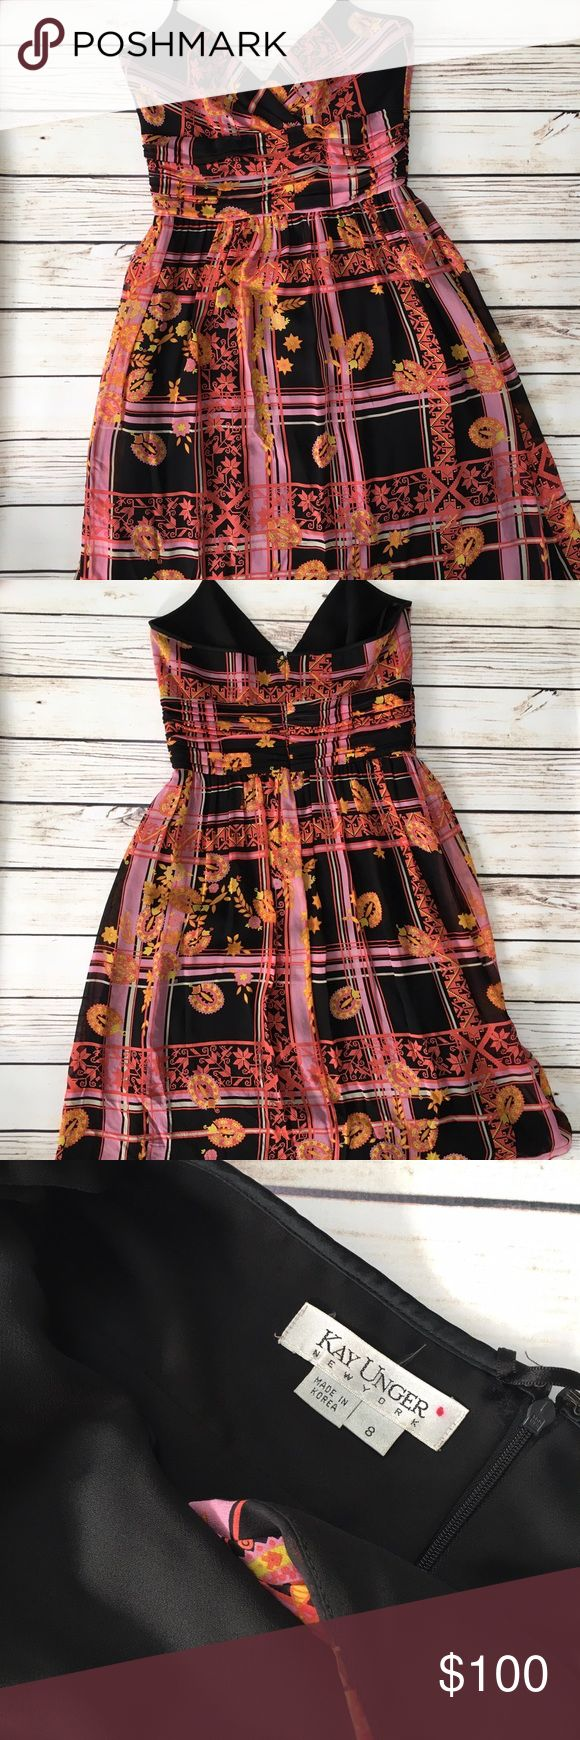 KAY UNGER Summer Dress KAY UNGER Summer Dress. So chic! Halter tie next. Beautiful print and fabrics. Silk lined. From Neiman's. As is. In excellent condition. Worn once for event. Kay Unger Dresses Midi